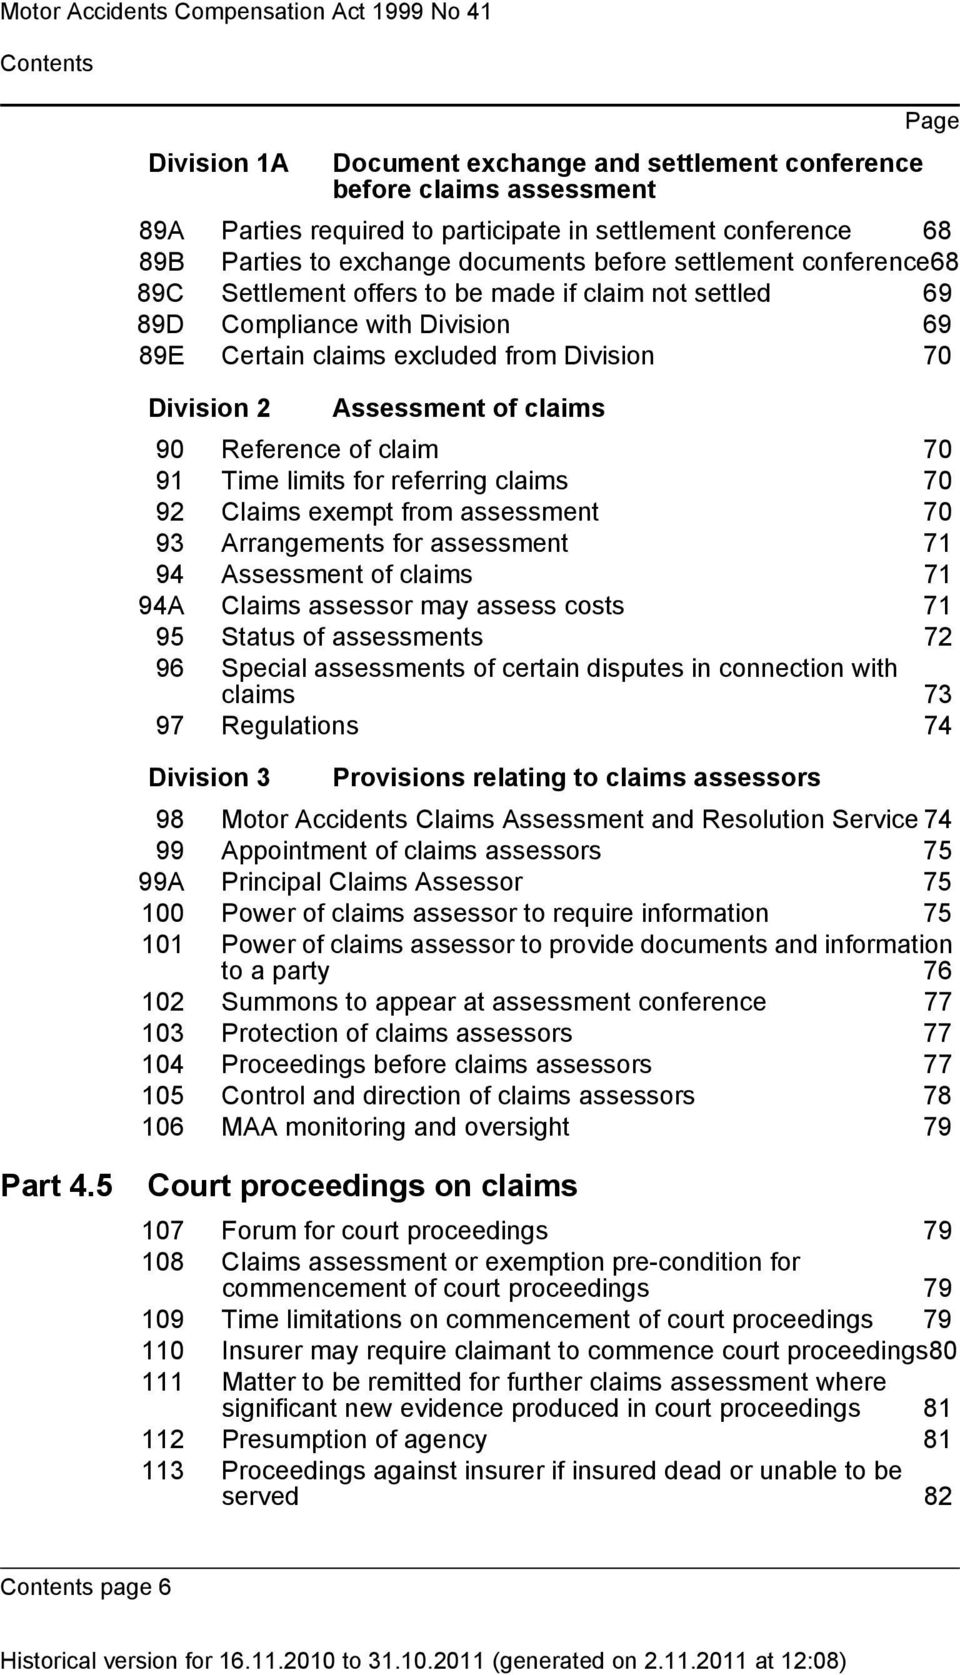 70 Division 2 Assessment of claims 90 Reference of claim 70 91 Time limits for referring claims 70 92 Claims exempt from assessment 70 93 Arrangements for assessment 71 94 Assessment of claims 71 94A